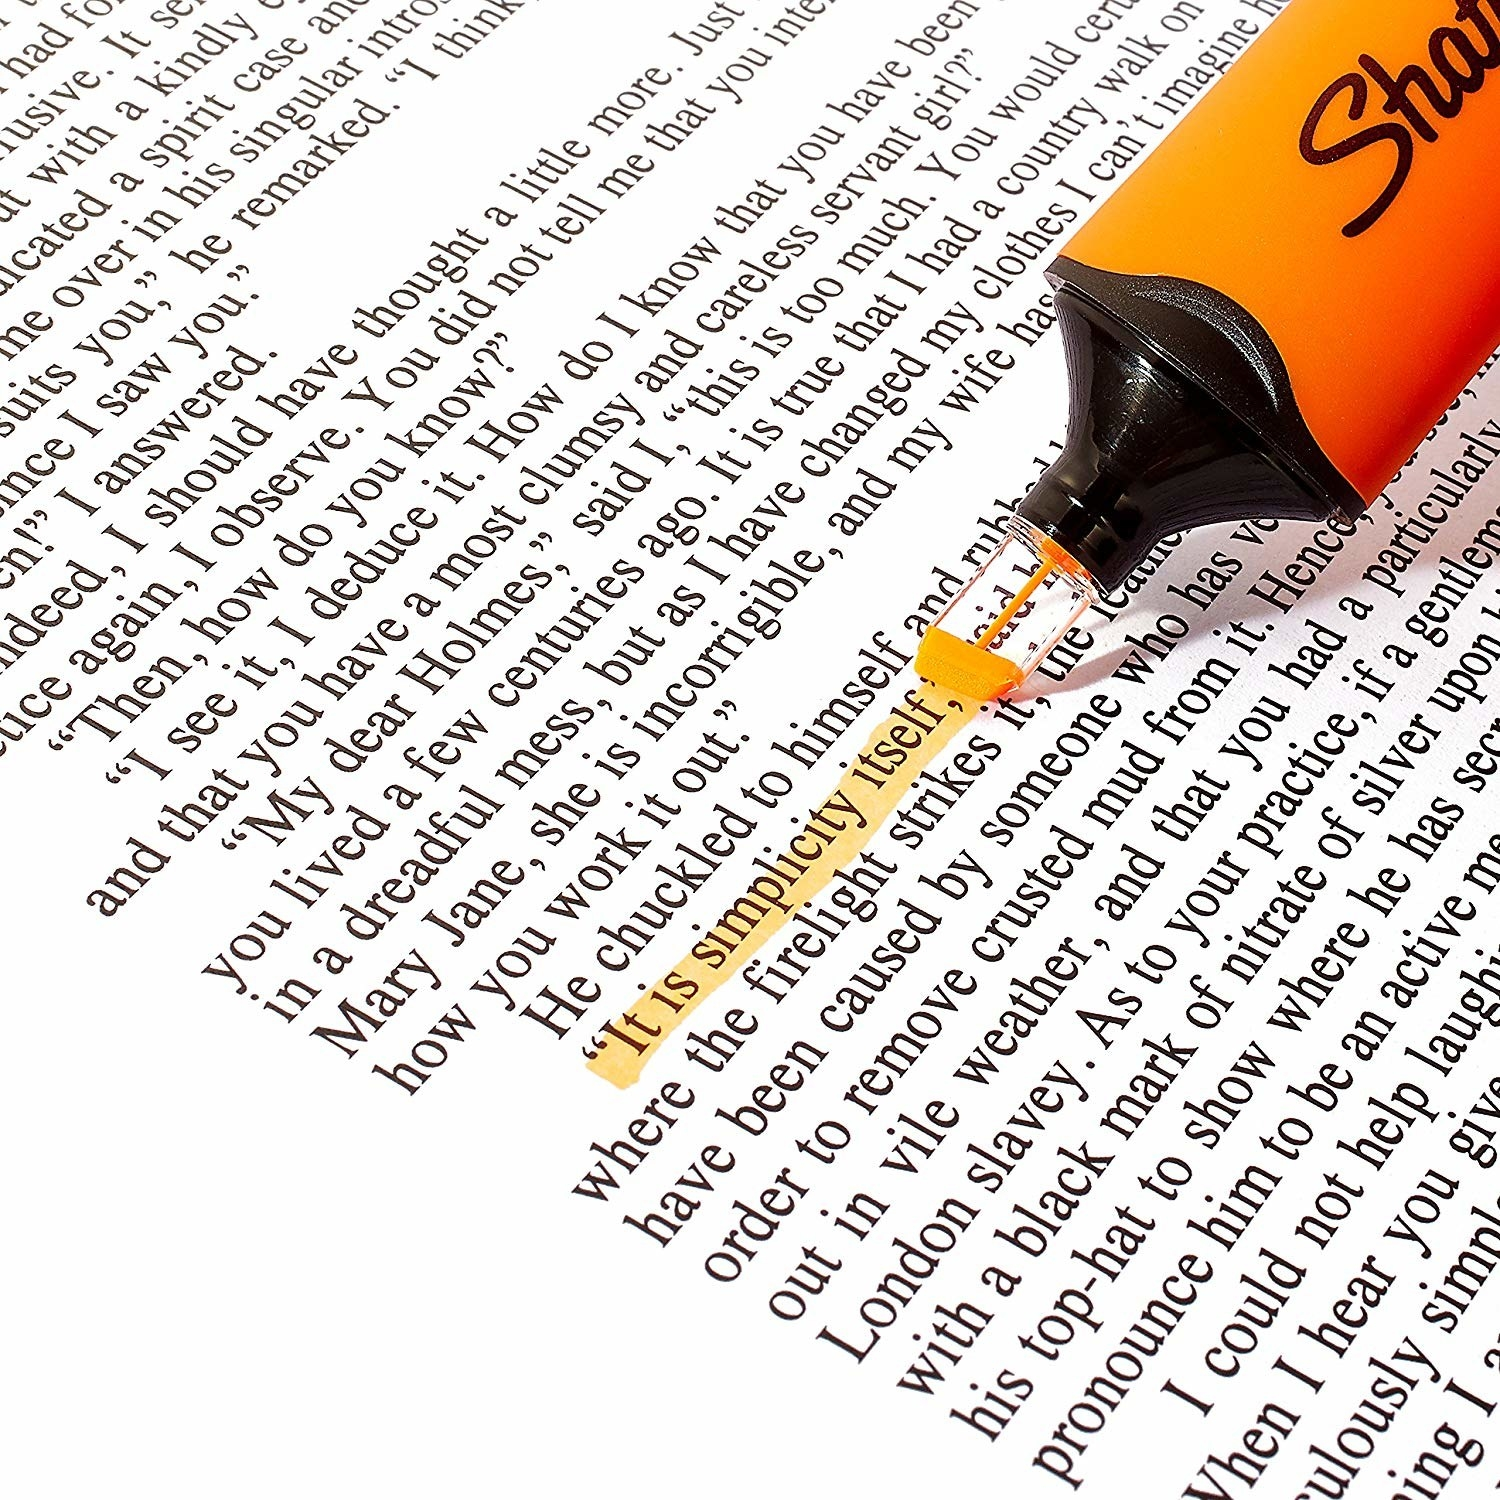 The highlighter being used on text.